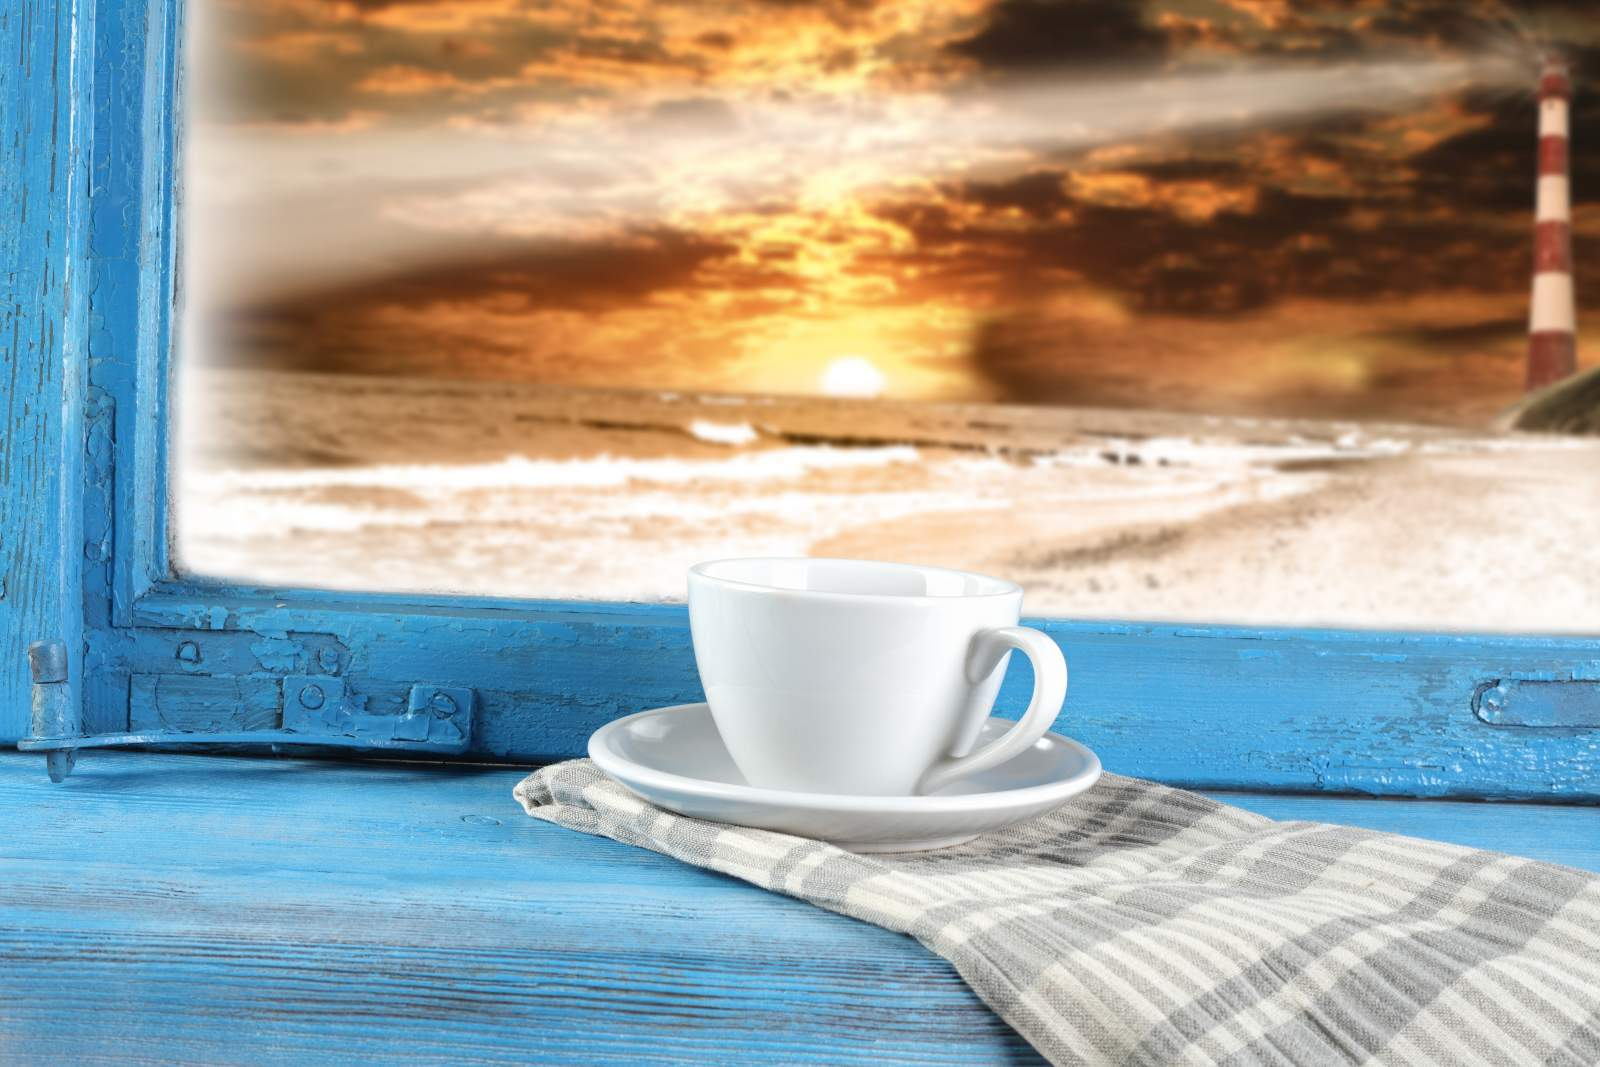 Cup of tea with sunset in background